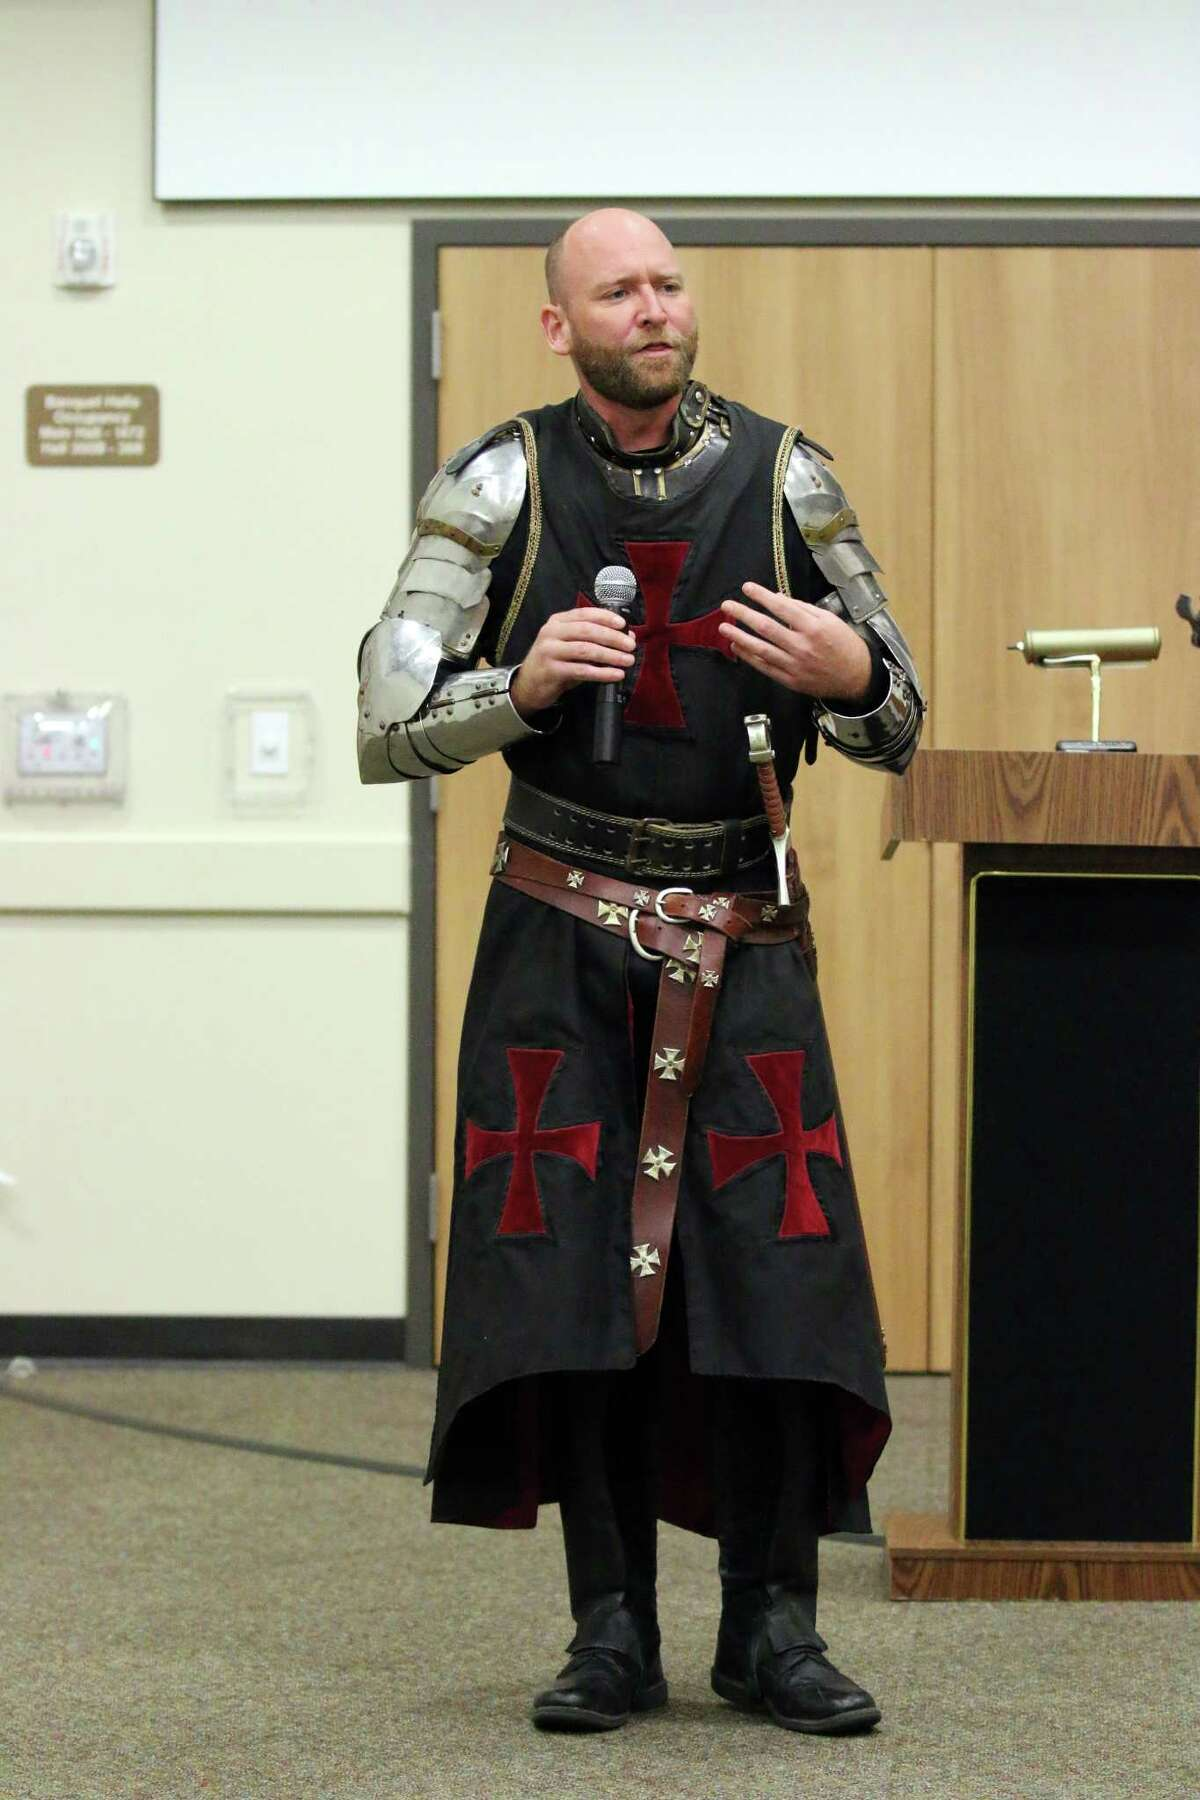 Chevalier James Lehman was in full armor when he came to visit the Dayton Rotary. He is involved with a character program called EarlyAct FirstKnight.